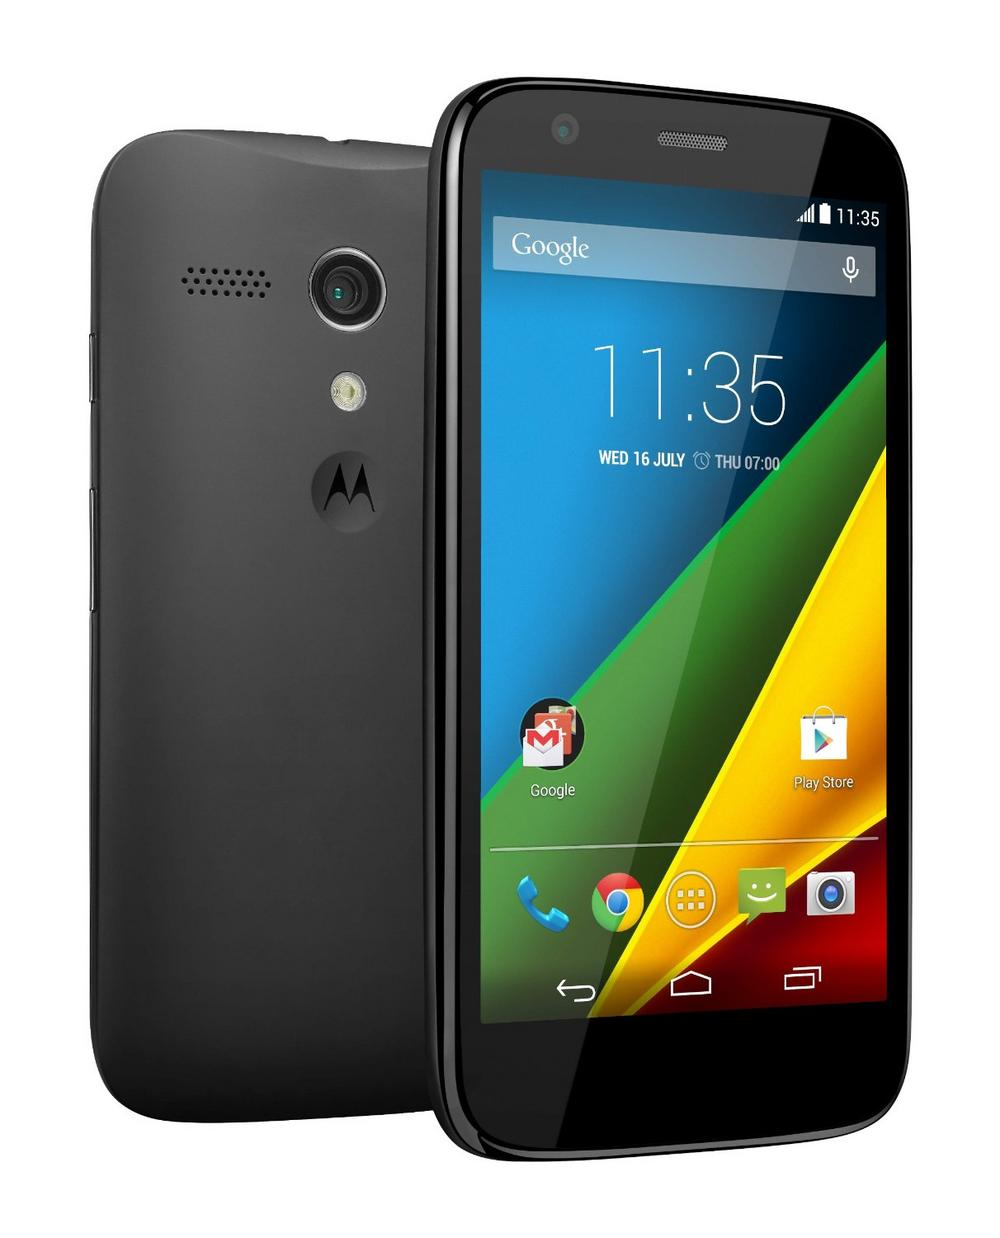 Motorola Moto G XT1039 8GB Touchscreen Smartphone Mobile Phone Unlocked - Black